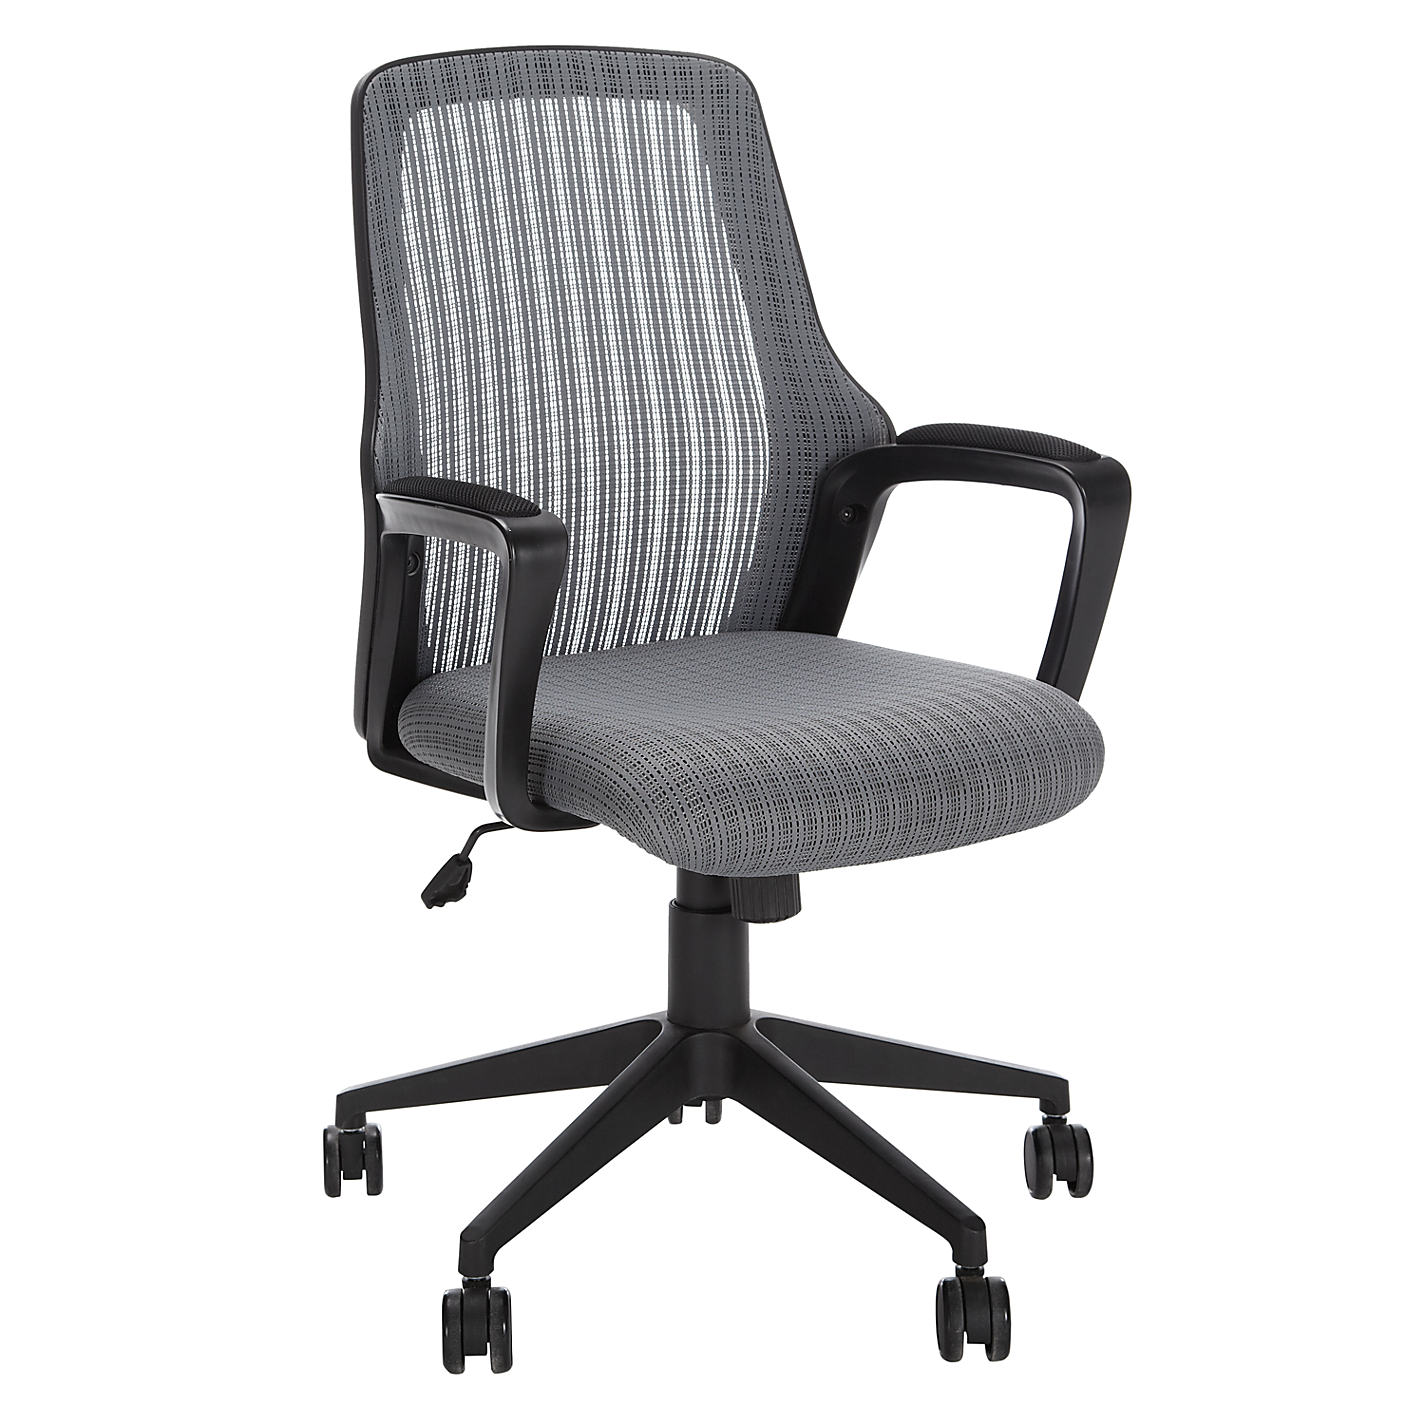 buy john lewis lois office chair, grey | john lewis